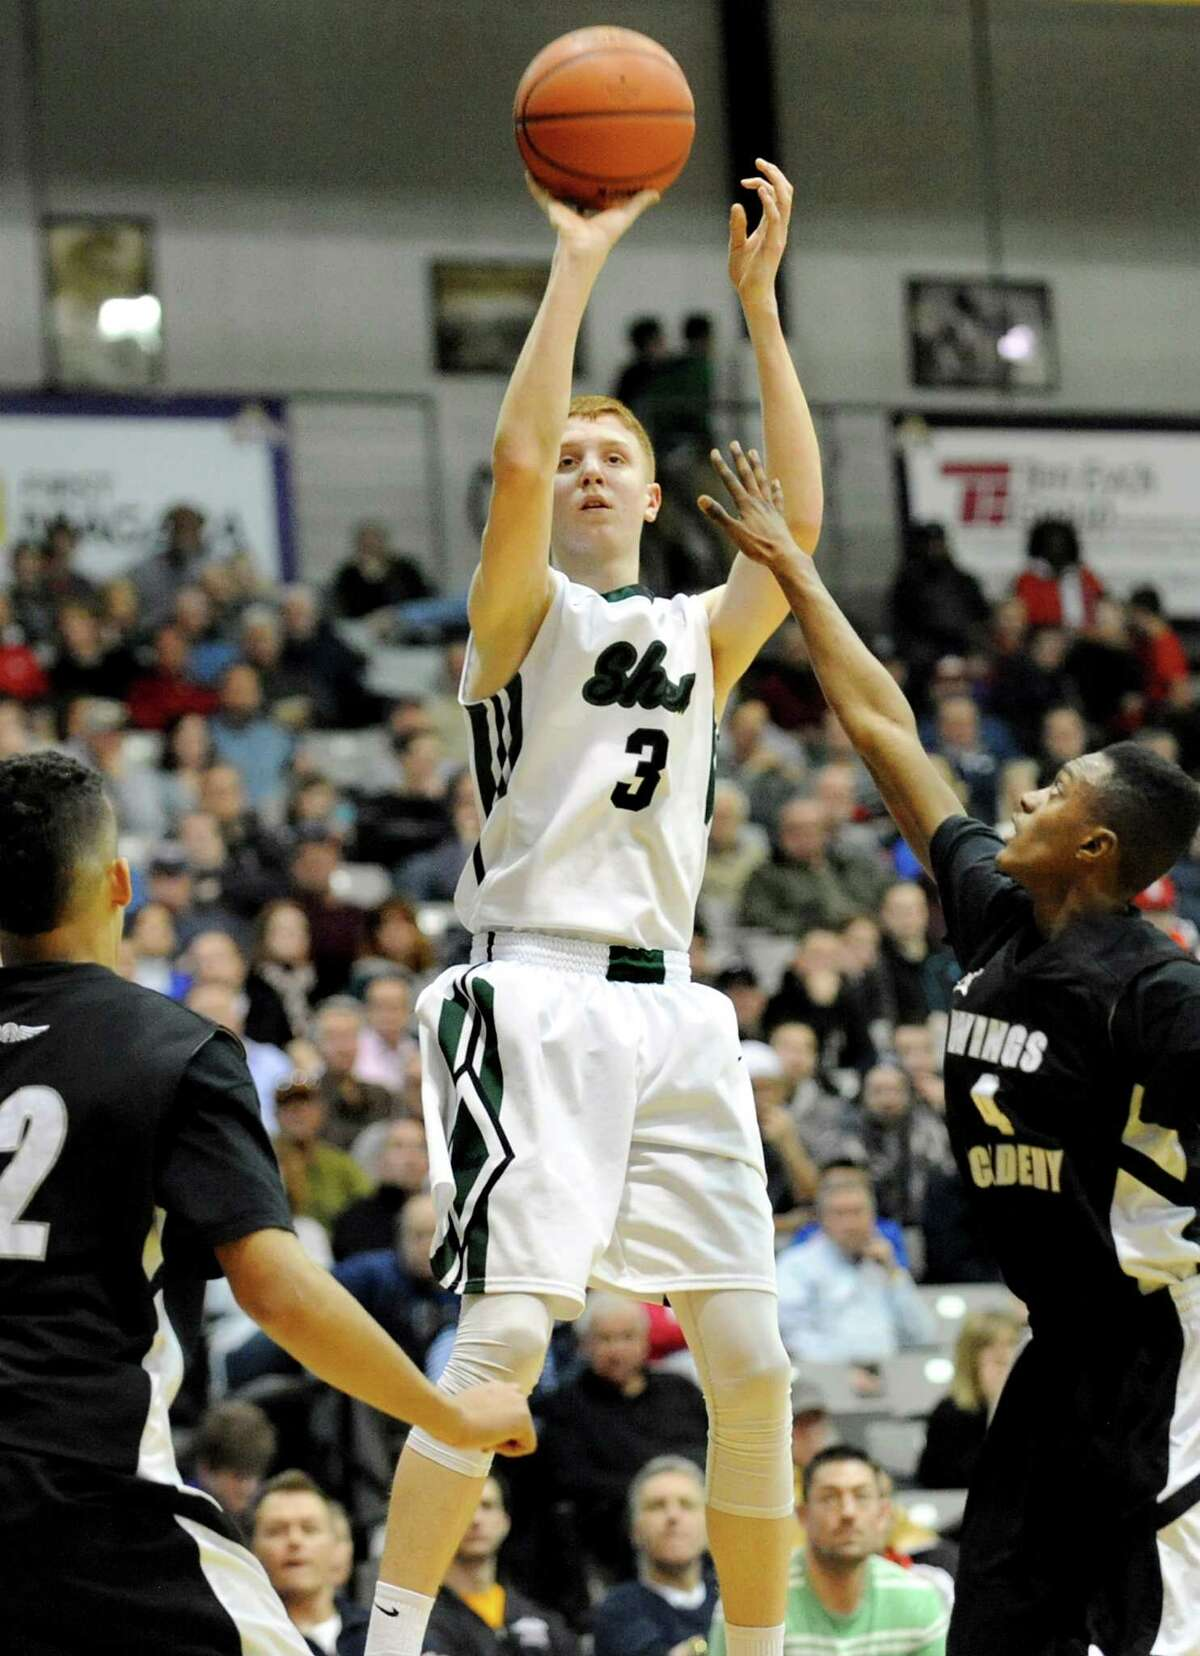 Shen's Kevin Huerter, center, hits a 3-point shot as Wings Academy's Desure Buie, right, defends in the Class AA Federation Tournament boys' semifinal on Friday, March 27, 2015, at UAlbany in Albany, N.Y. (Cindy Schultz / Times Union)